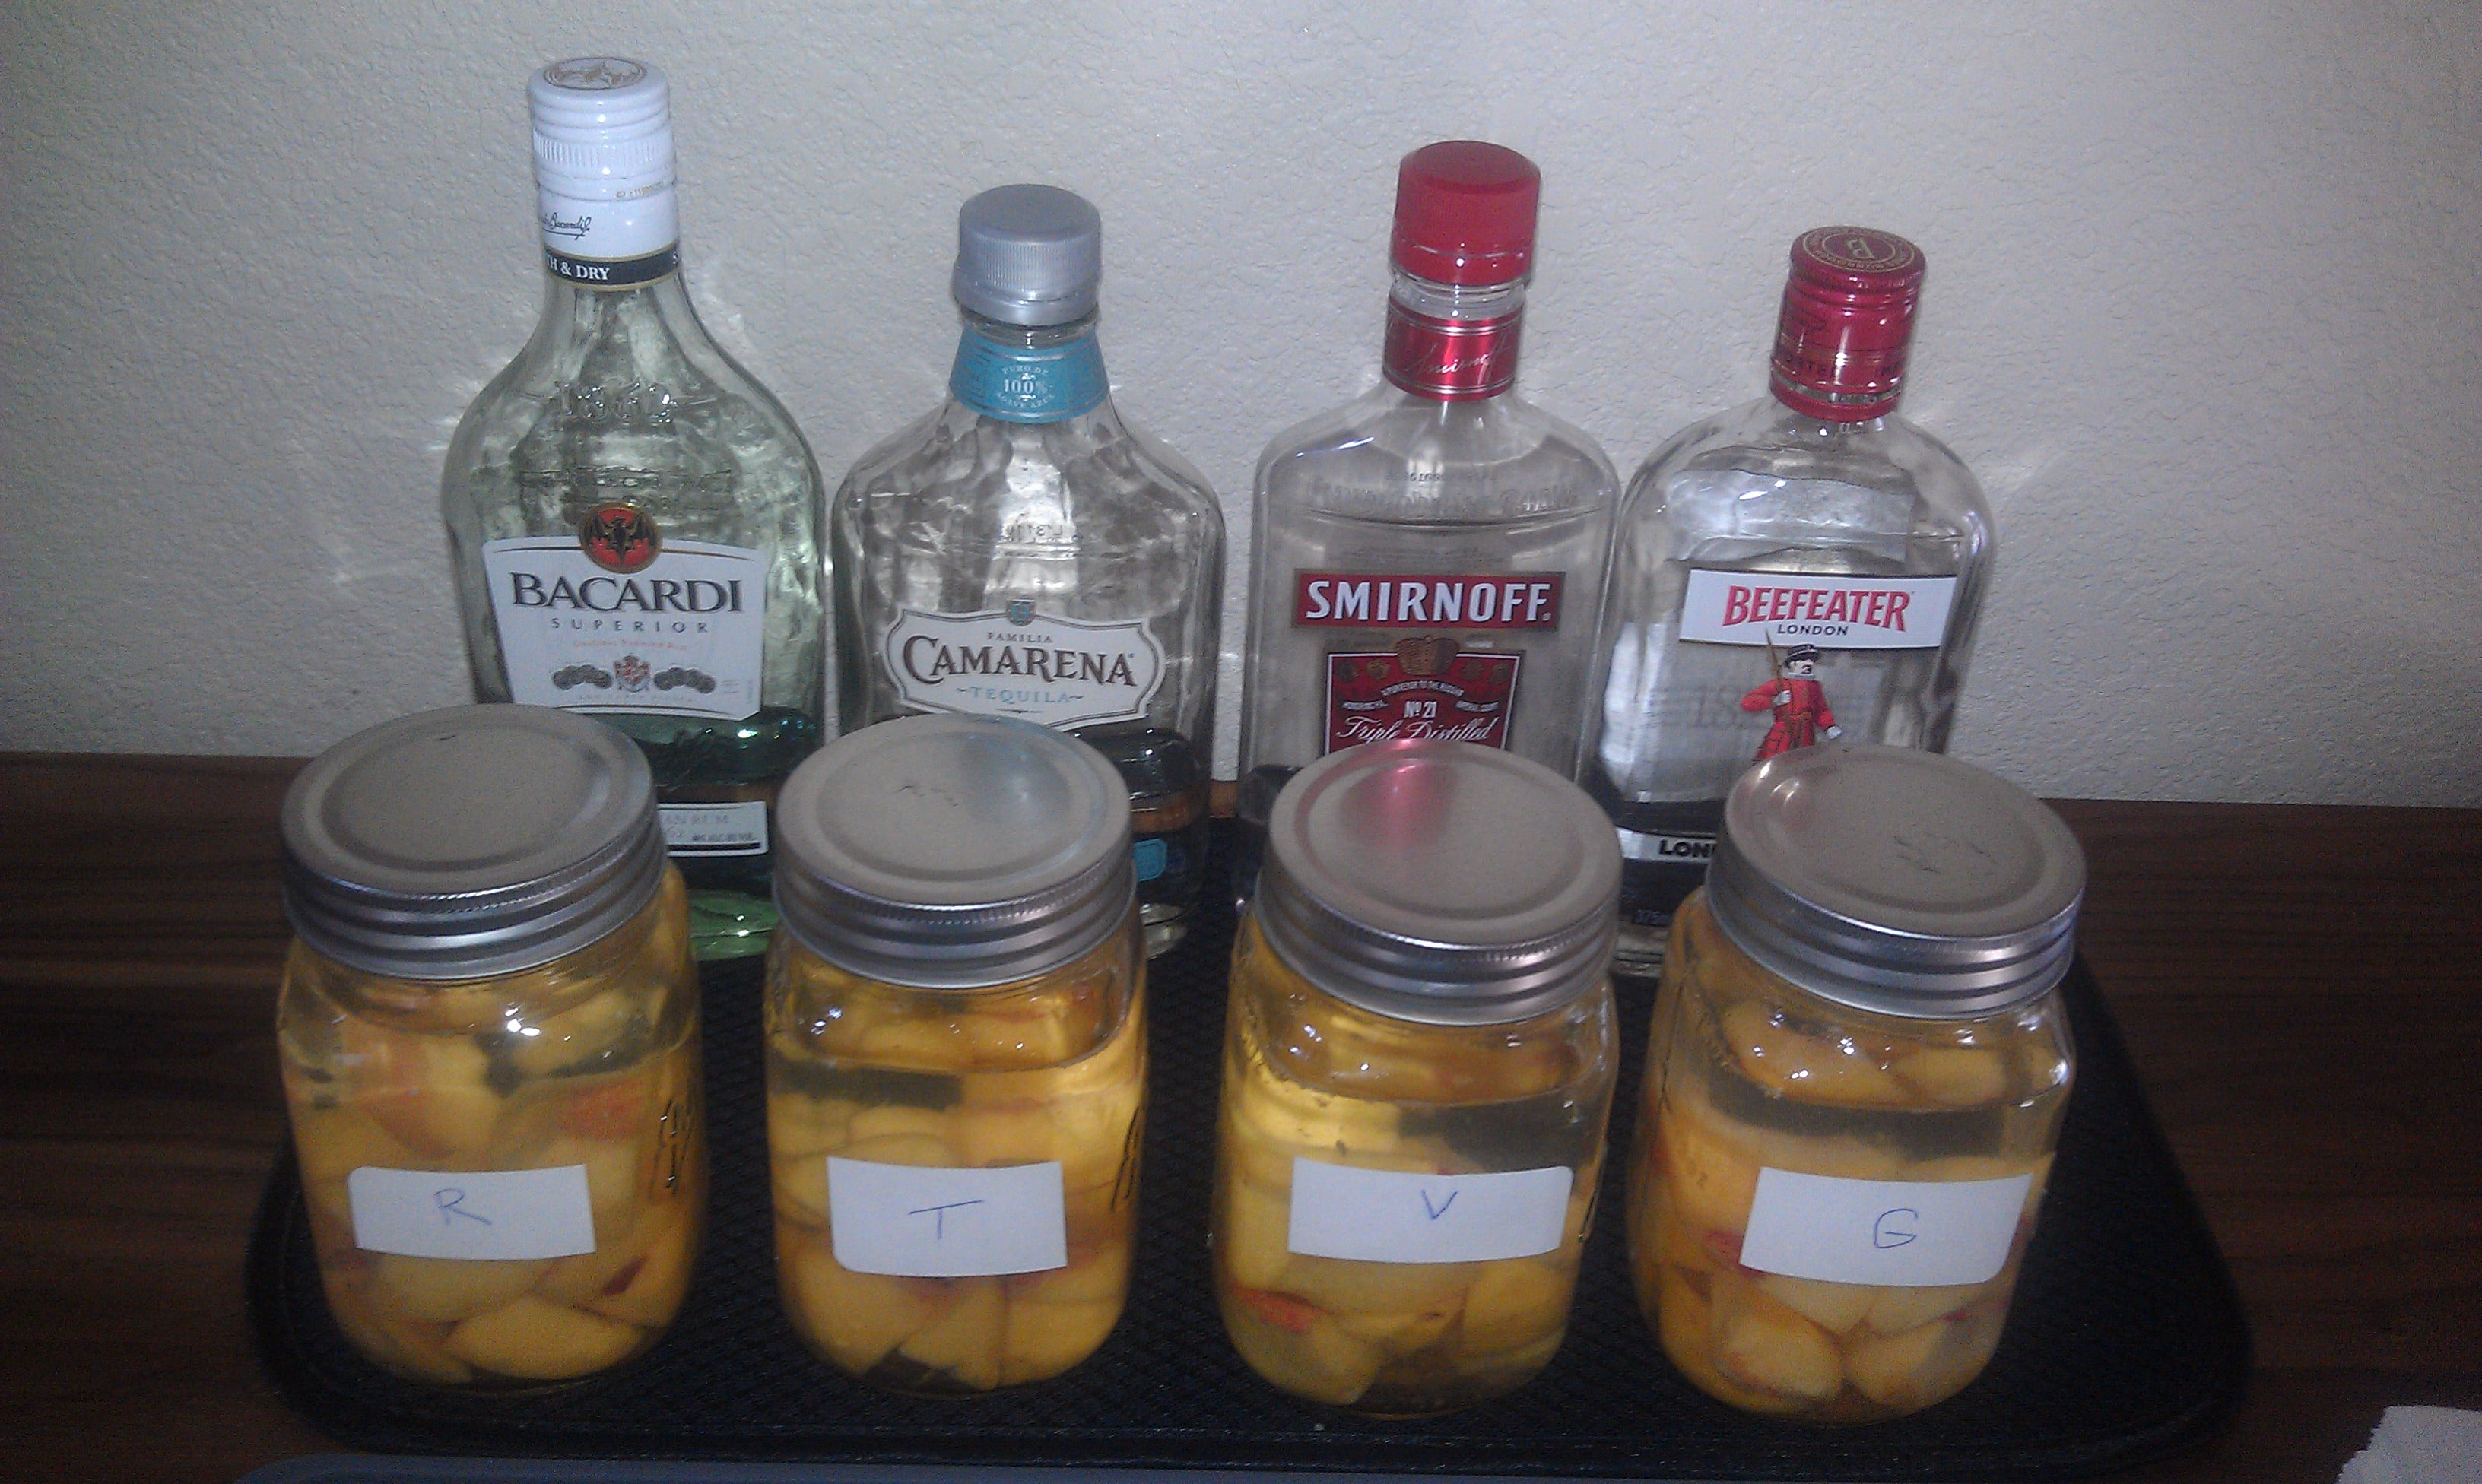 This is the infusion experiment after putting the peaches and liquor in the jars.